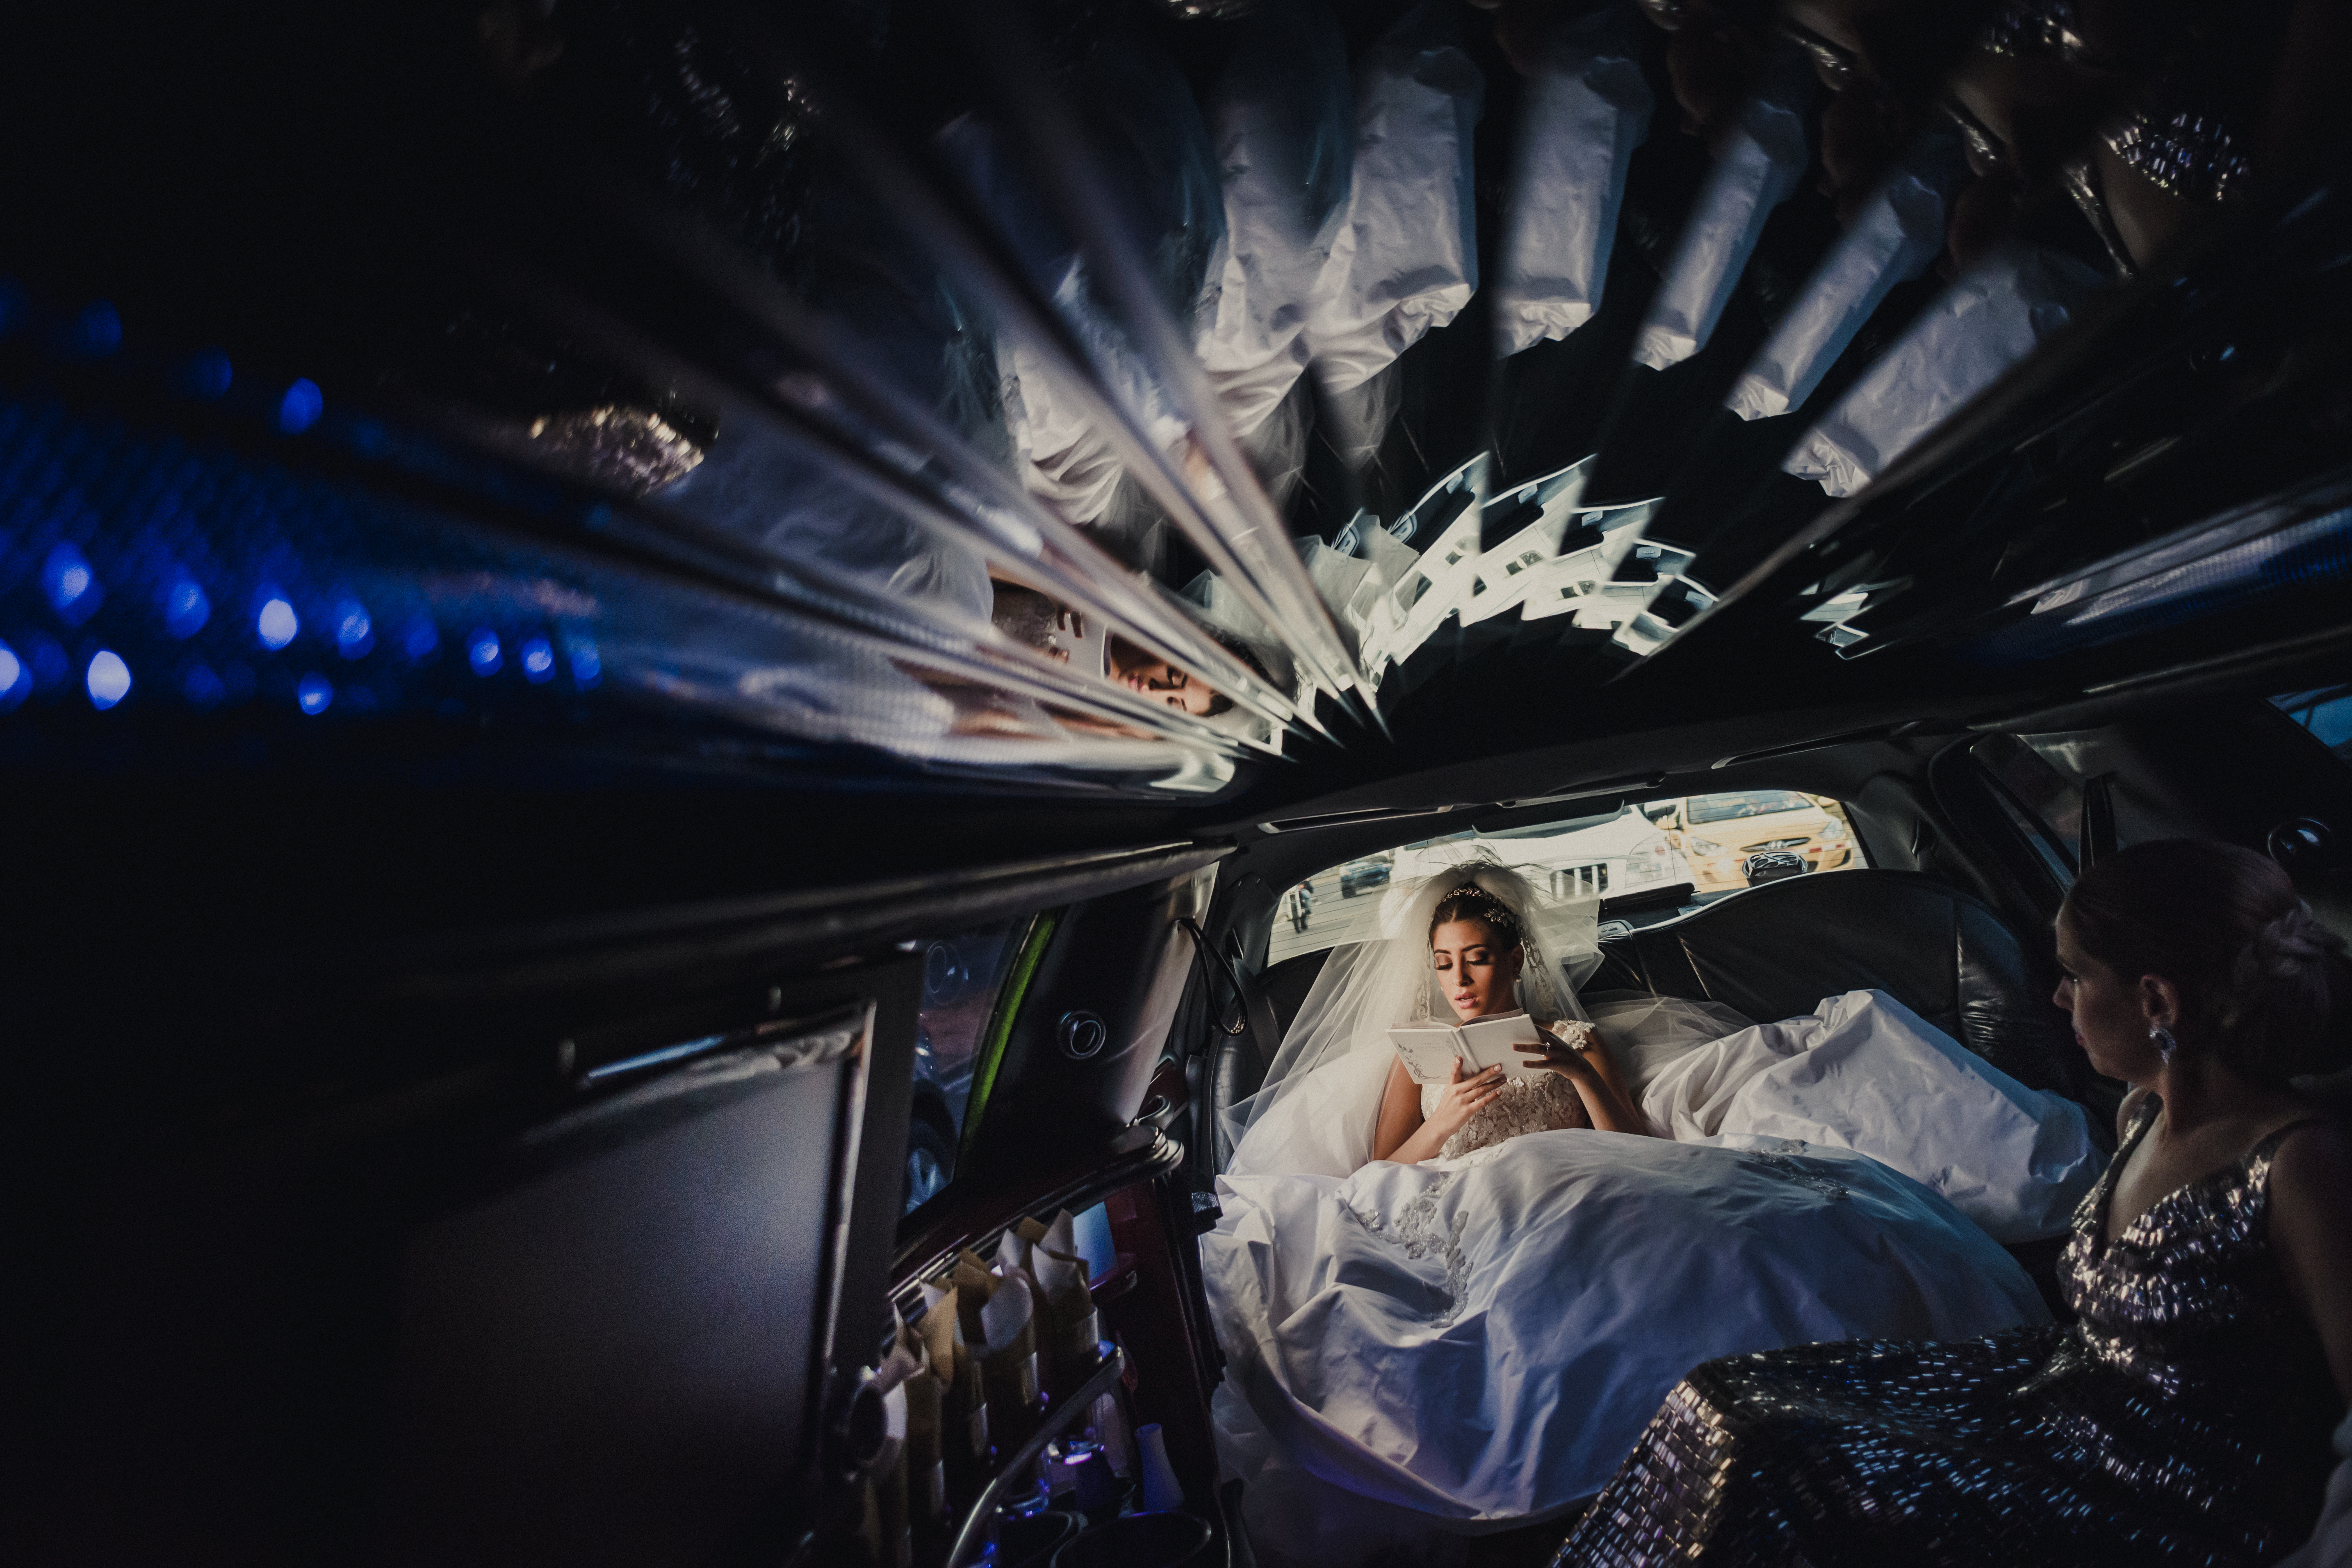 Bride reflected in mirrored ceiling of limousine - photo by El Marco Rojo - Spain